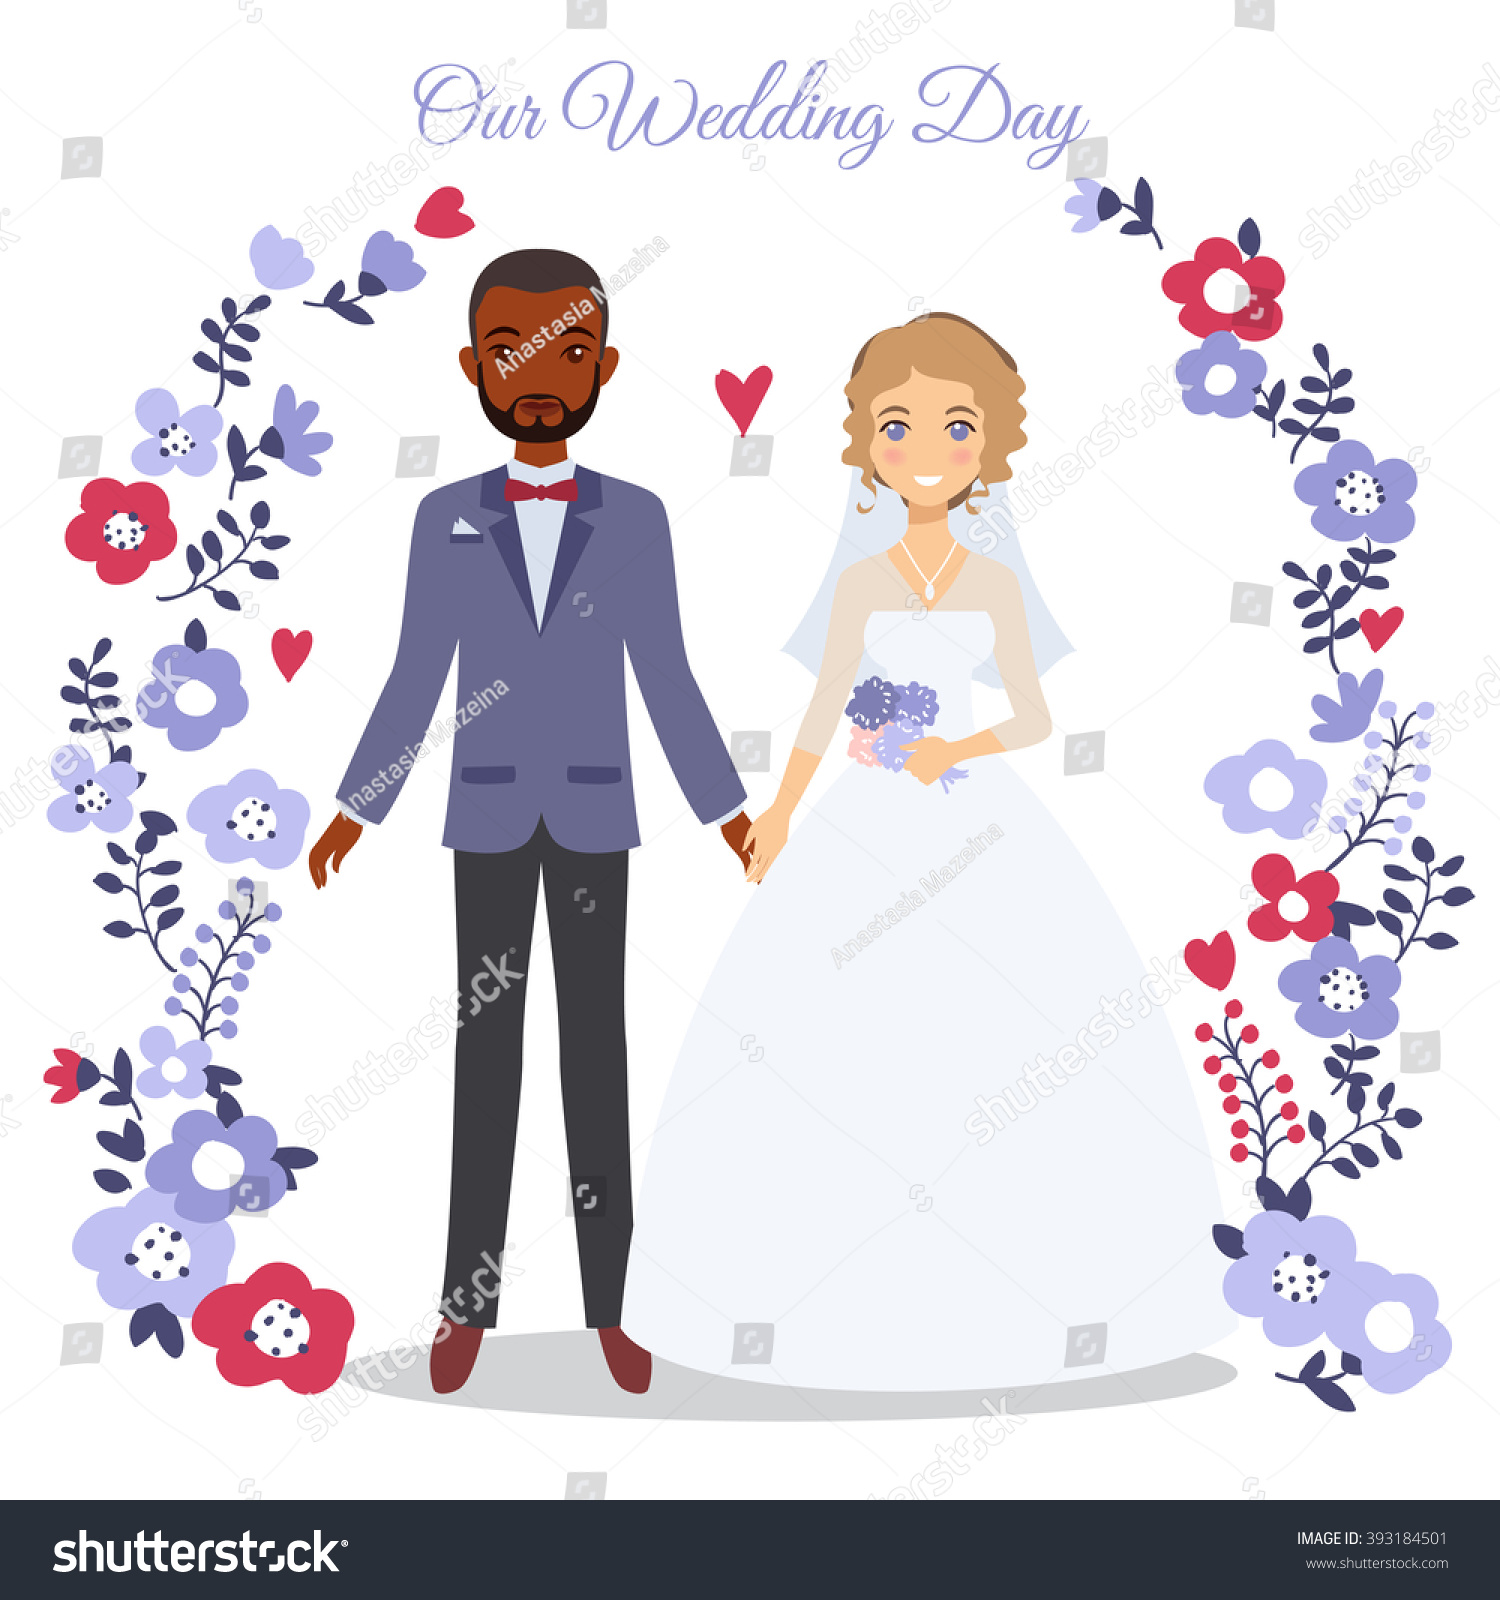 Cute Wedding Couple Vector Illustration. - 393184501 ...